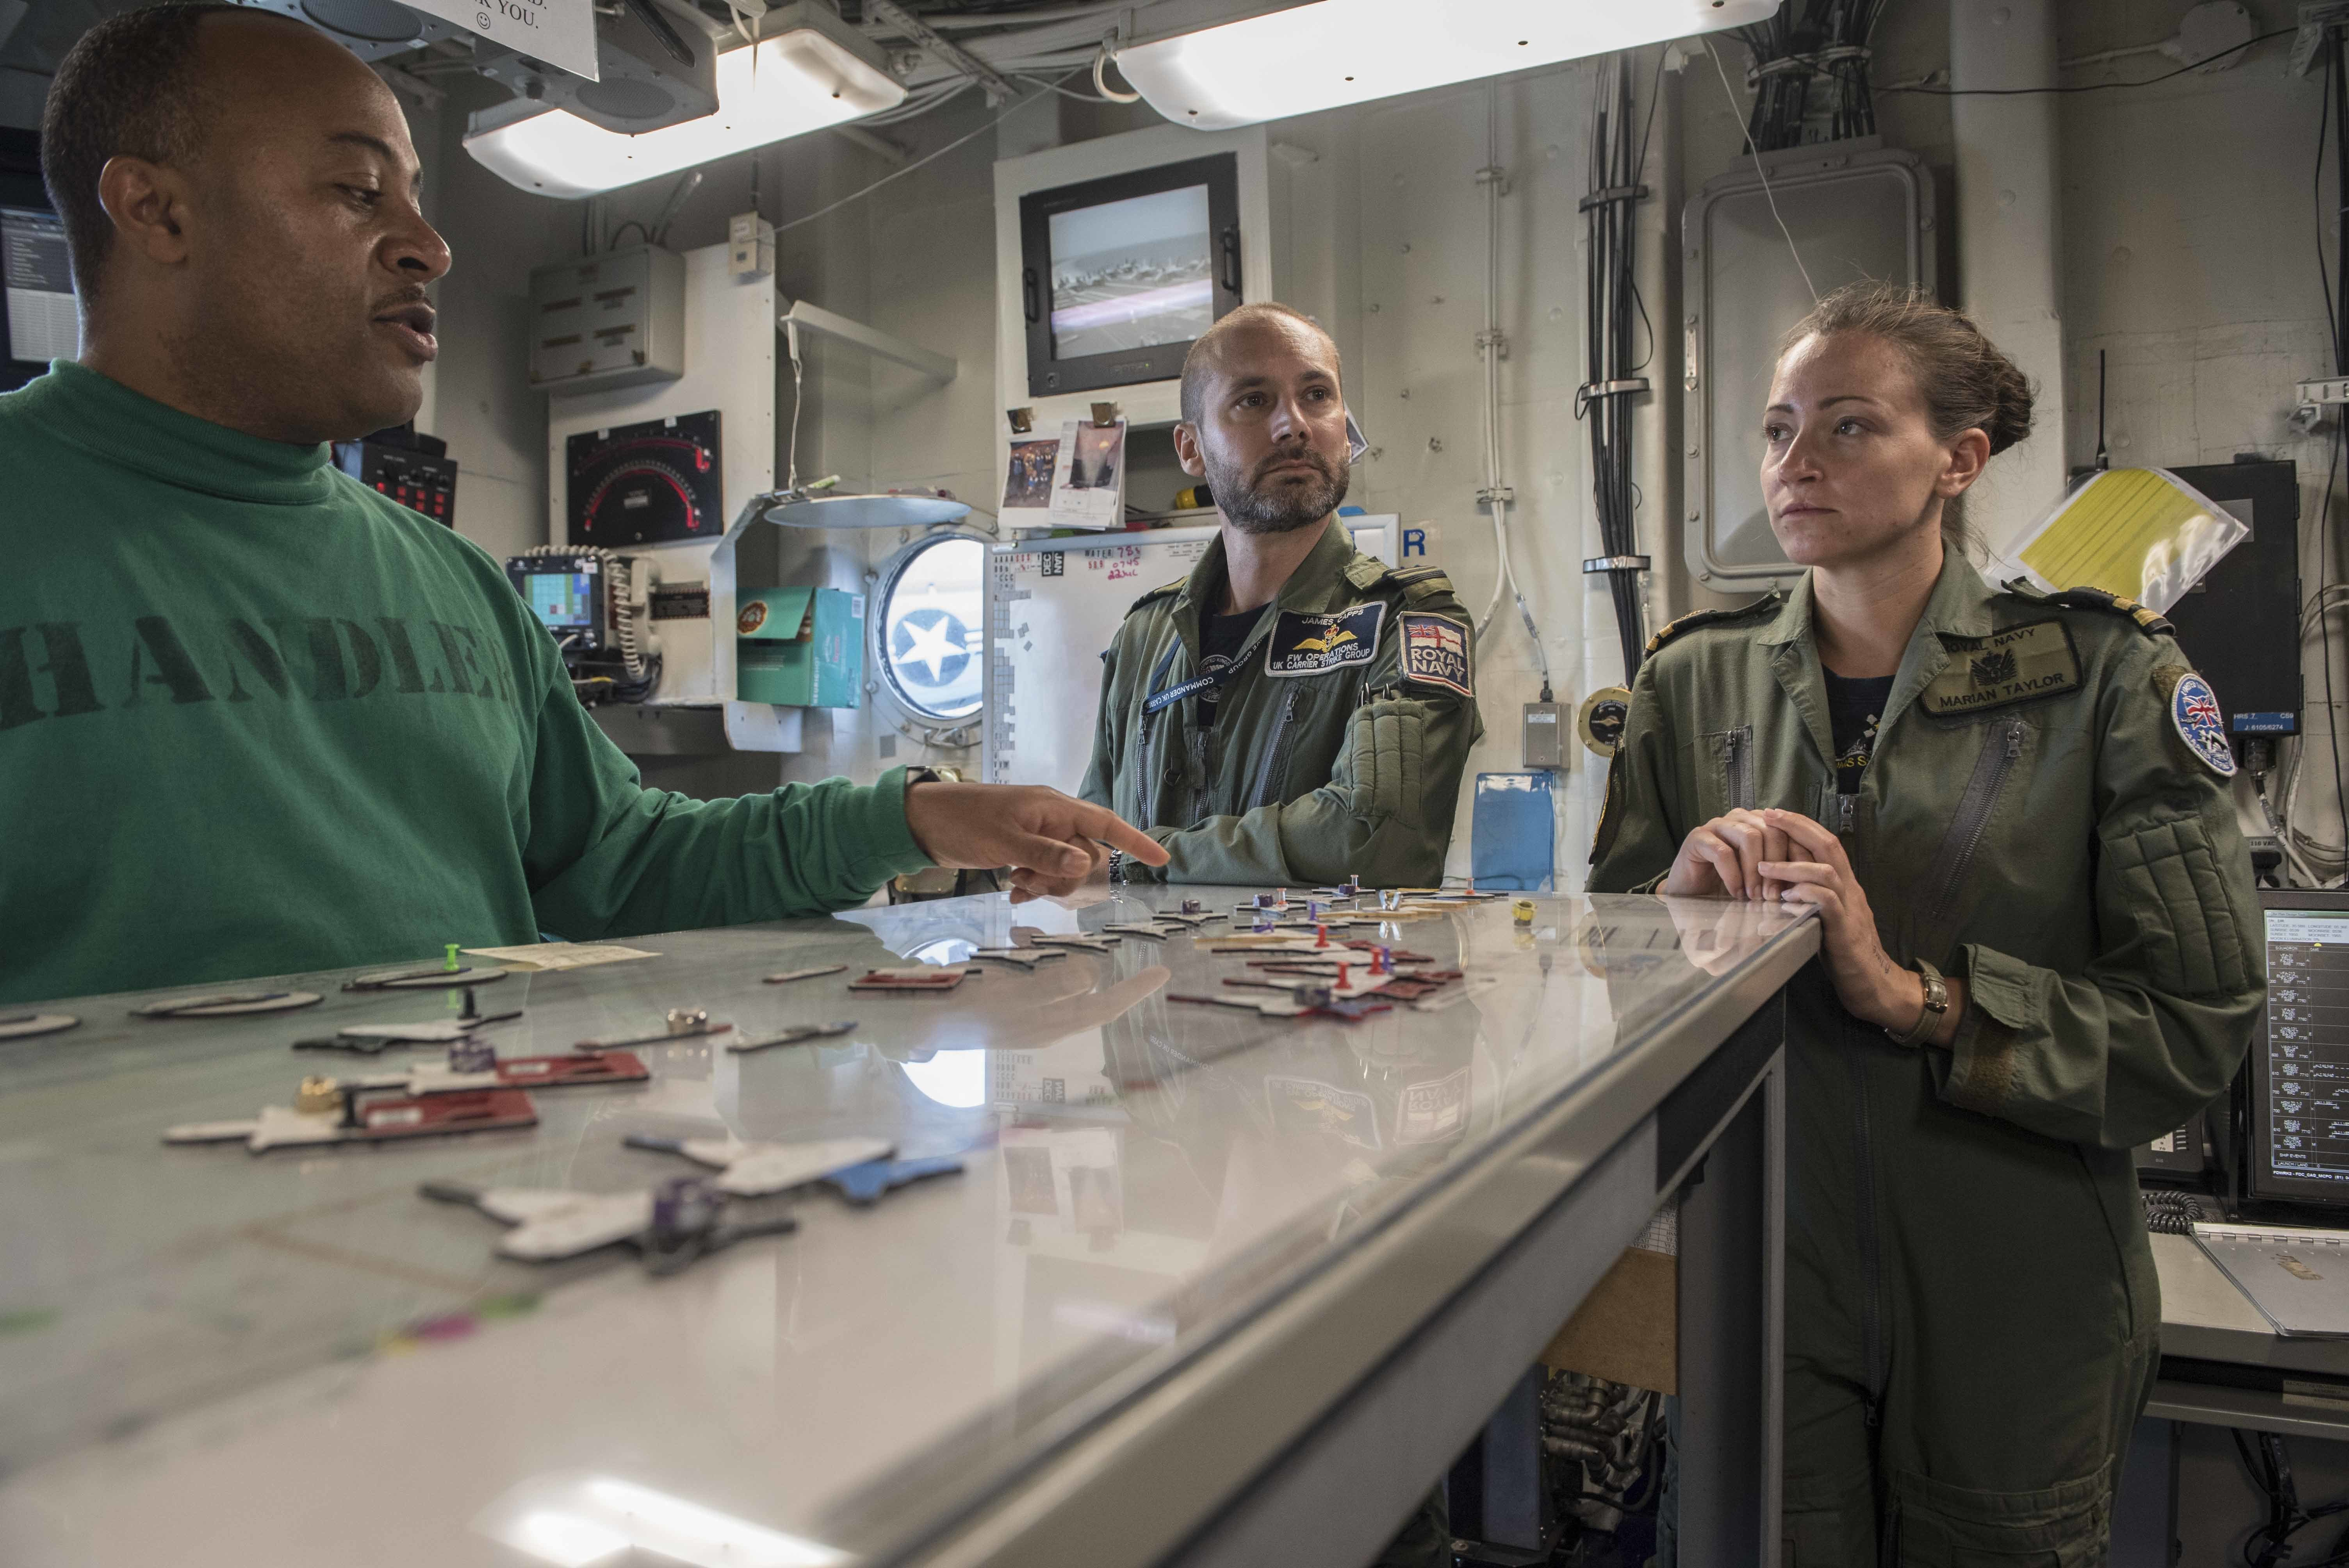 170721-N-AJ467-240 MEDITERRANEAN SEA (July 22, 2017) Lt. Cmdr. Winston Cotterell, aircraft handling officer aboard USS George H.W. Bush (CVN 77), explains flight deck operations to Royal Navy (RN) Lt. Cdr. James Capps and RN Lt. Marian Taylor, both from the U.K. Carrier Strike Group, in Flight Deck Control. The officers from the UKCSG are embarked in preparation for Exercise Saxon Warrior, a keystone exercise as the U.K. prepares for the arrival of the HMS Queen Elizabeth. The GHWB and its carrier strike group are conducting naval operations in the U.S. 6th Fleet area of operations in support of U.S. national security interests in Europe and Africa. (U.S. Navy photo by Mass Communication Specialist Seaman Darien Weigel/Released)